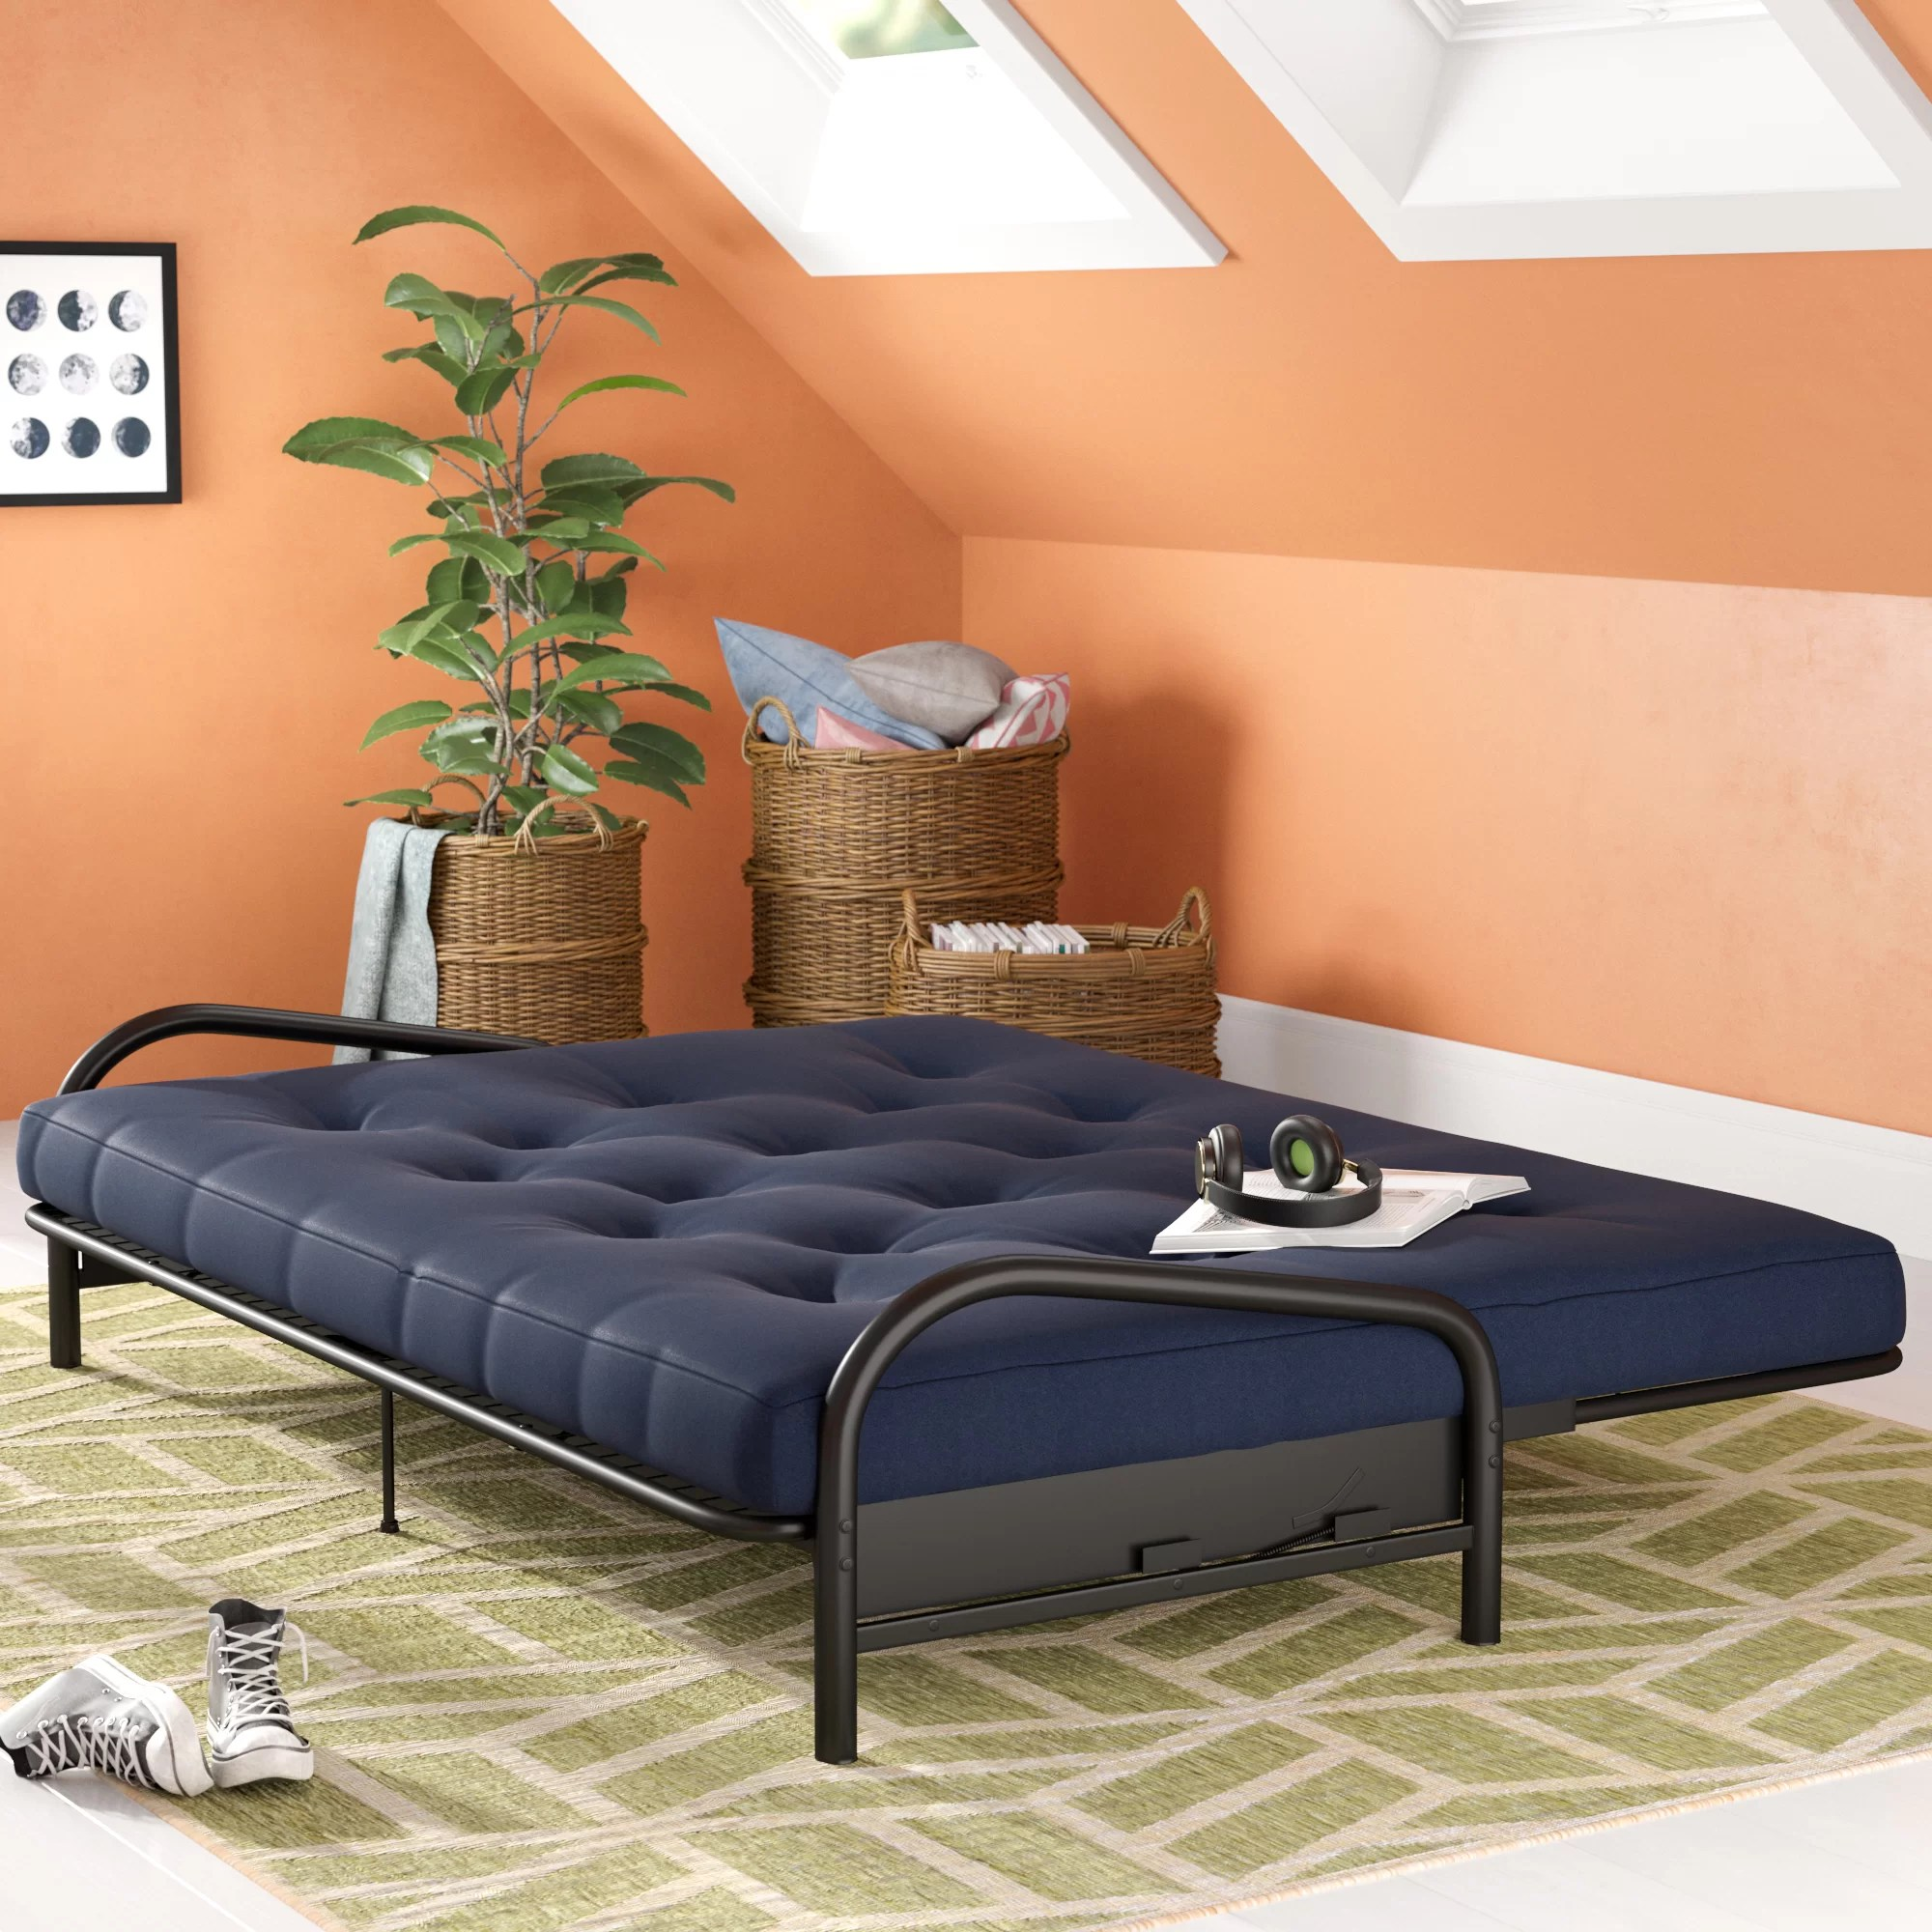 Best Places To Buy A Futon Futon Mattress